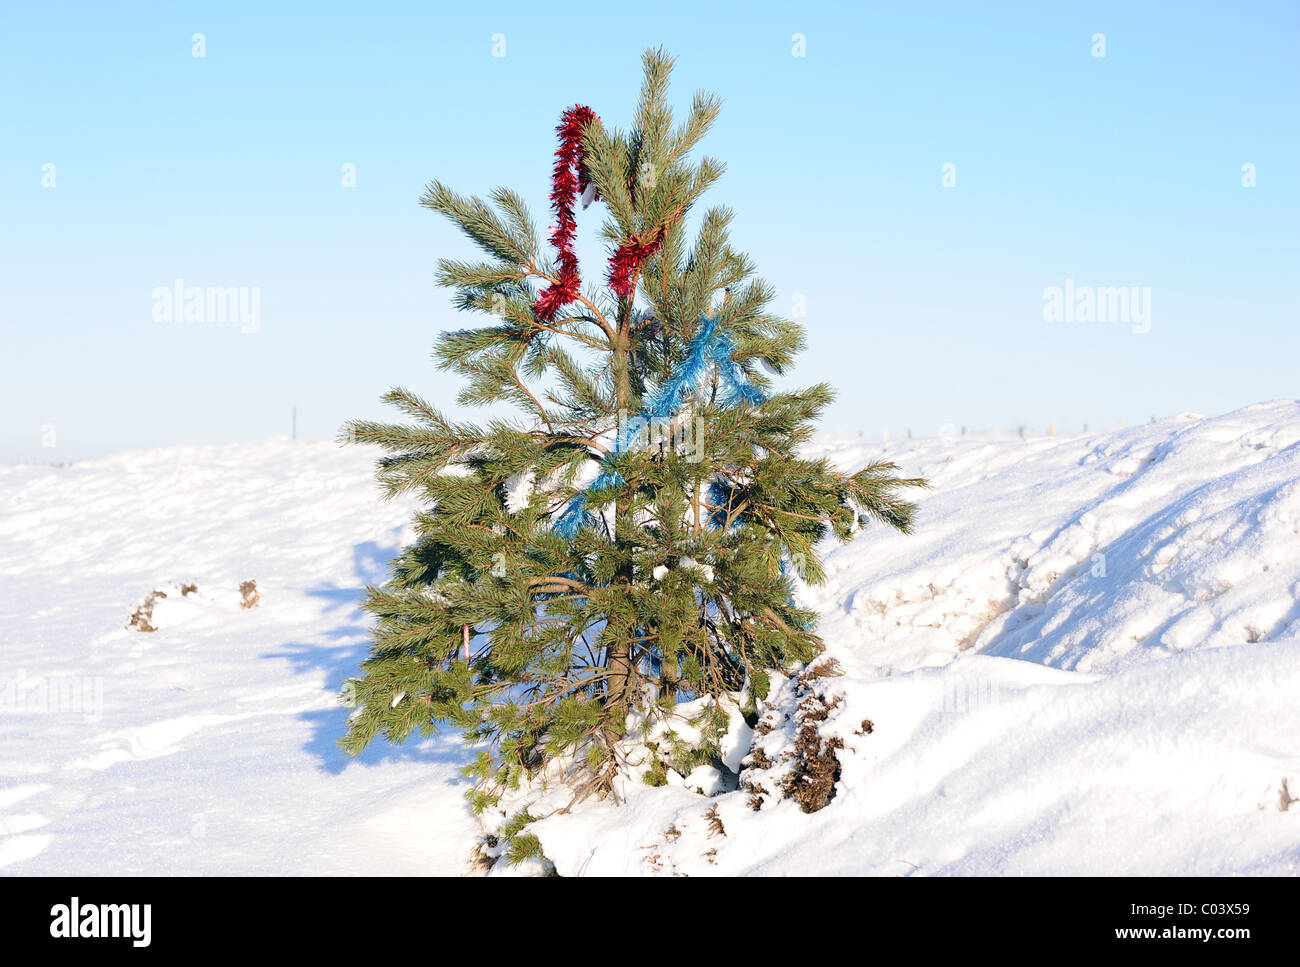 CHRISTMAS TREE TINSEL A169 PICKERING WHITBY ROAD NORTH YORKSHIRE ENGLAND A169 PICKERING TO WHITBY ROAD 21 December - Stock Image